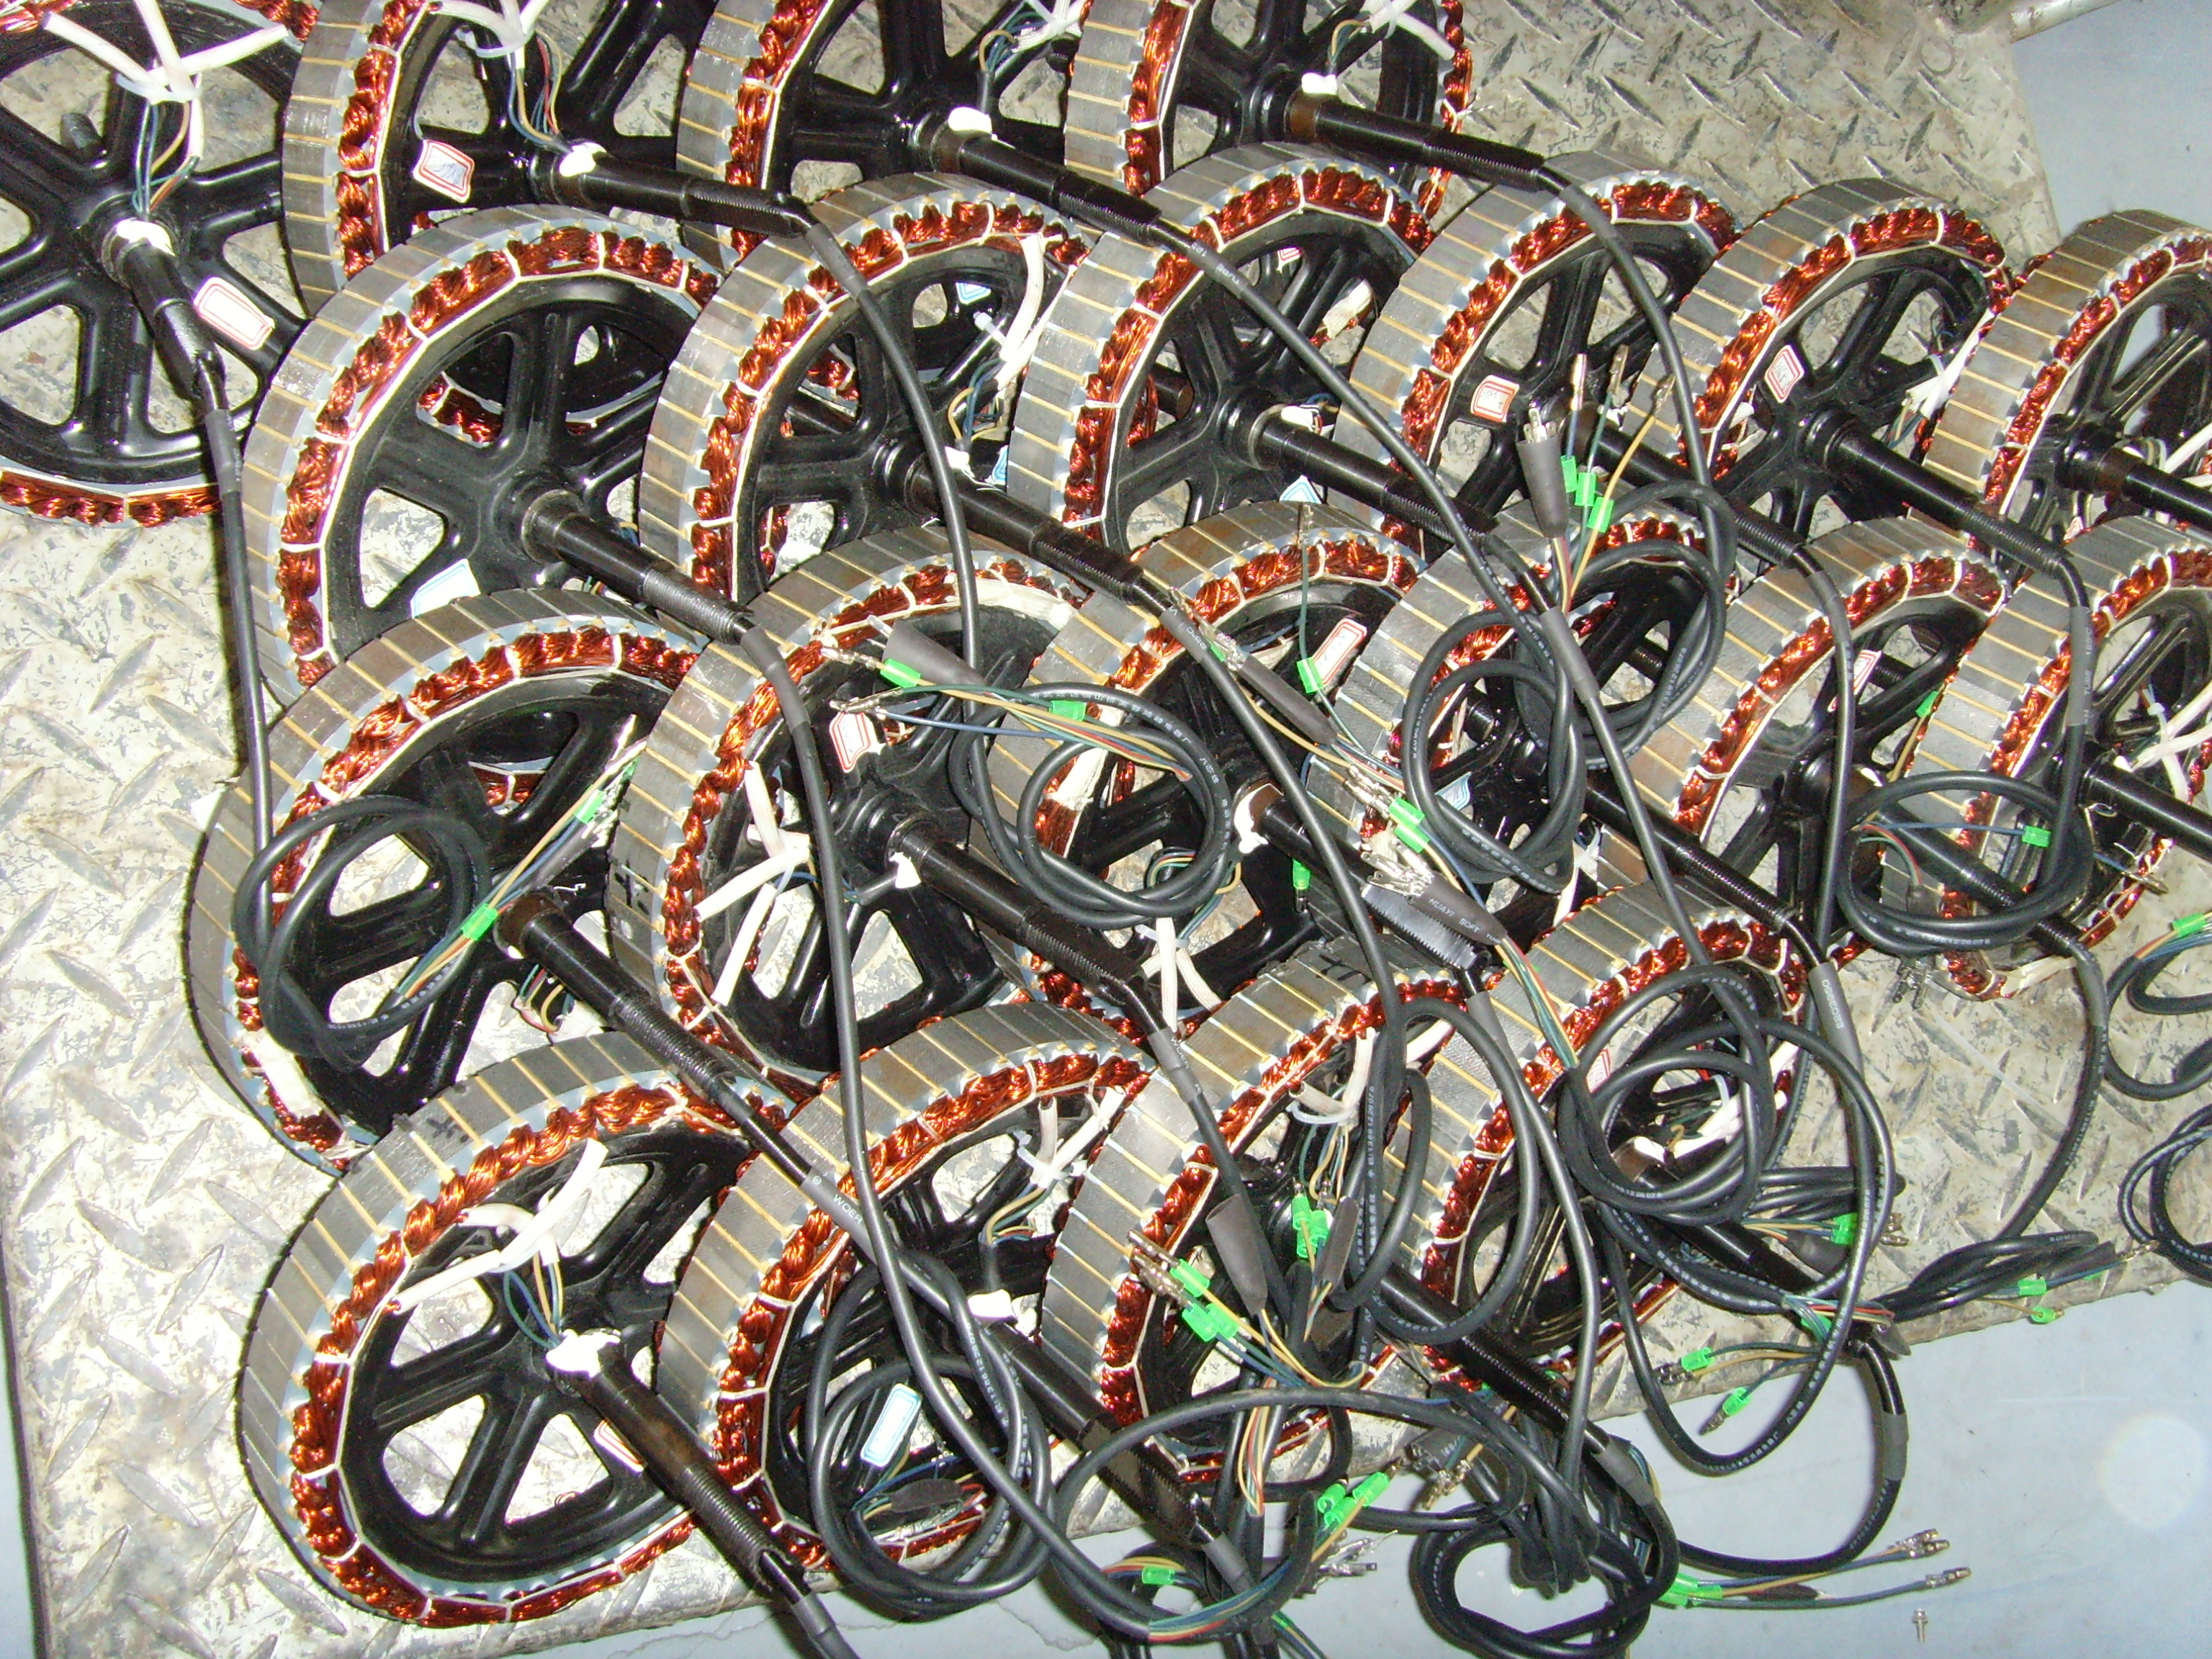 E bike hub motor factory tour in china electricbike com for Bicycles with electric motors